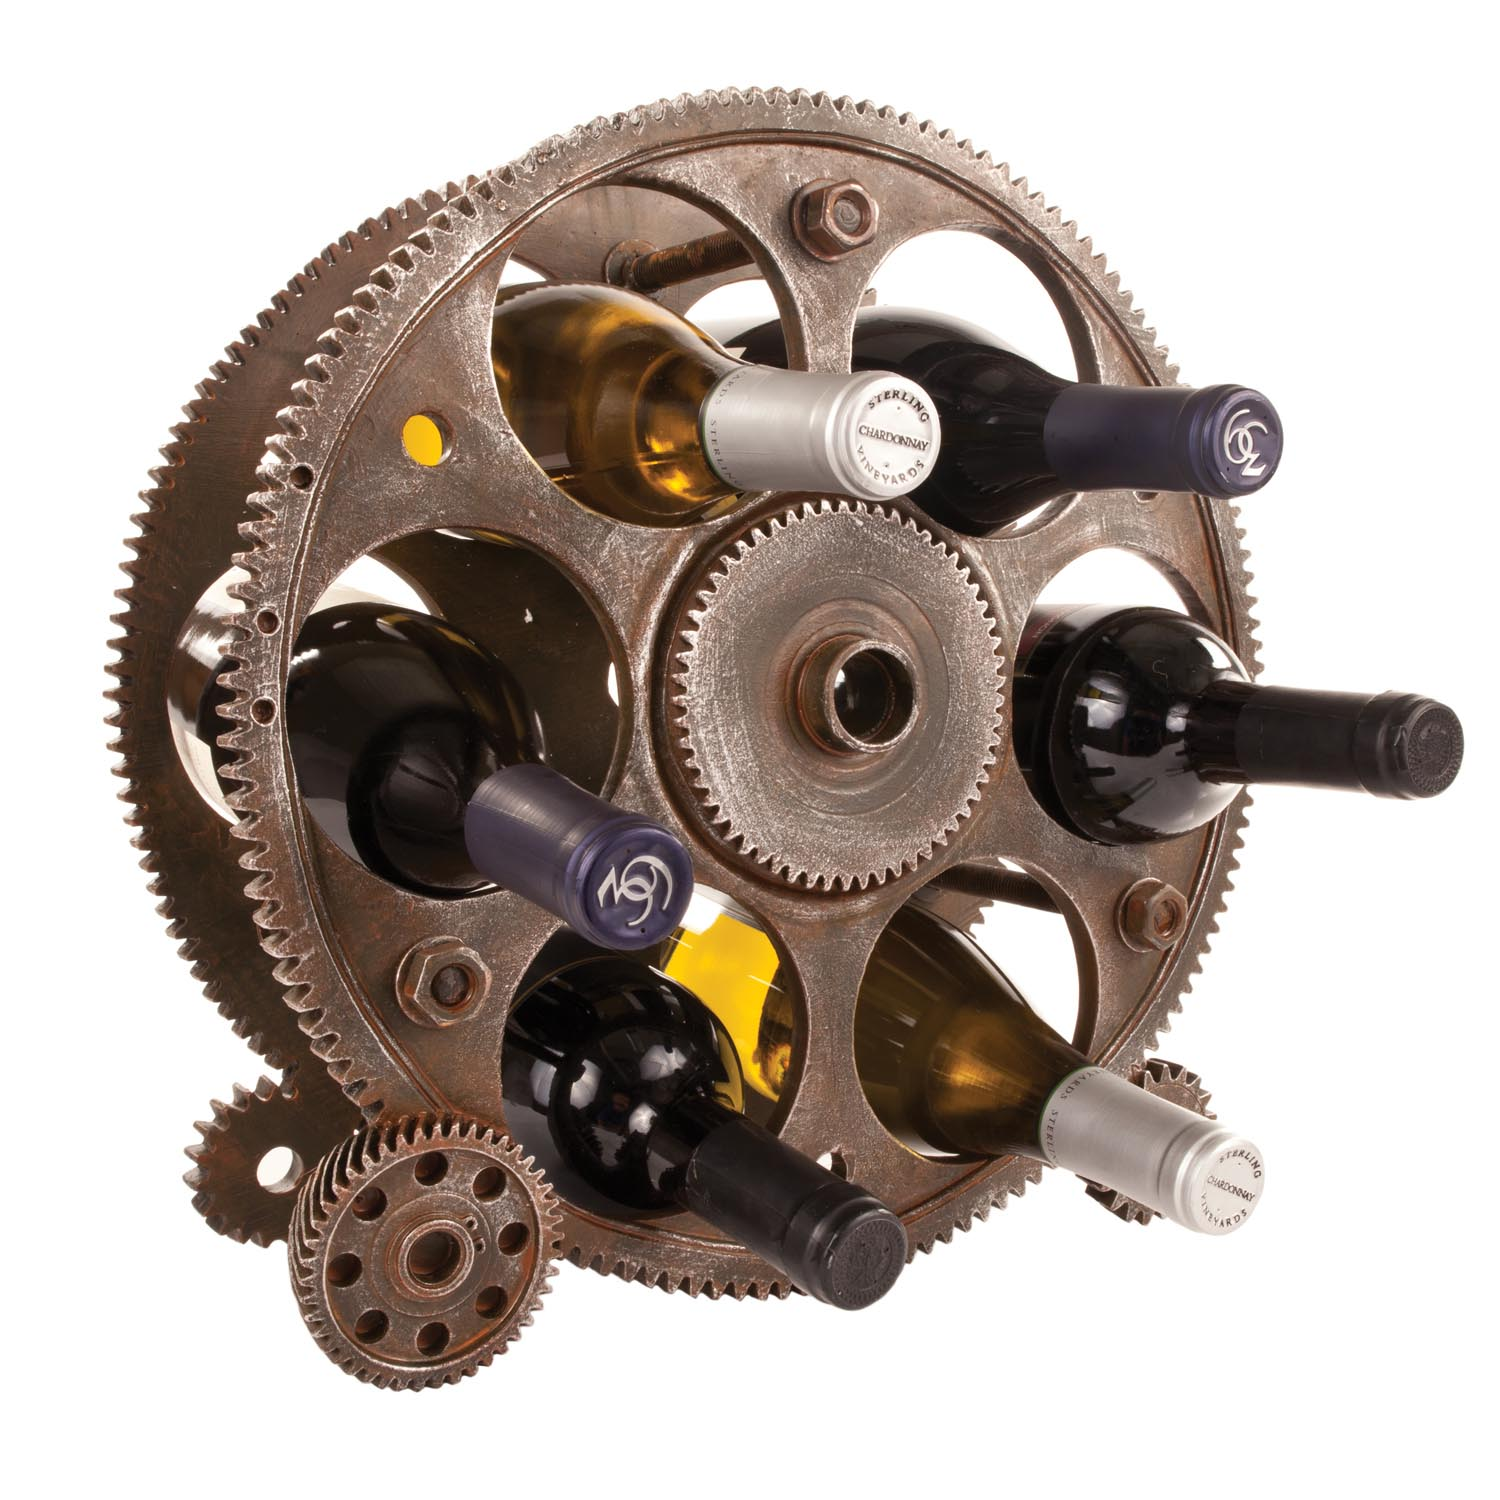 Reversible reclaimed wine barrel Bar Gears And Wheels Wine Bottle Rack Etsy Wine Racks At American Country Home Store American Country